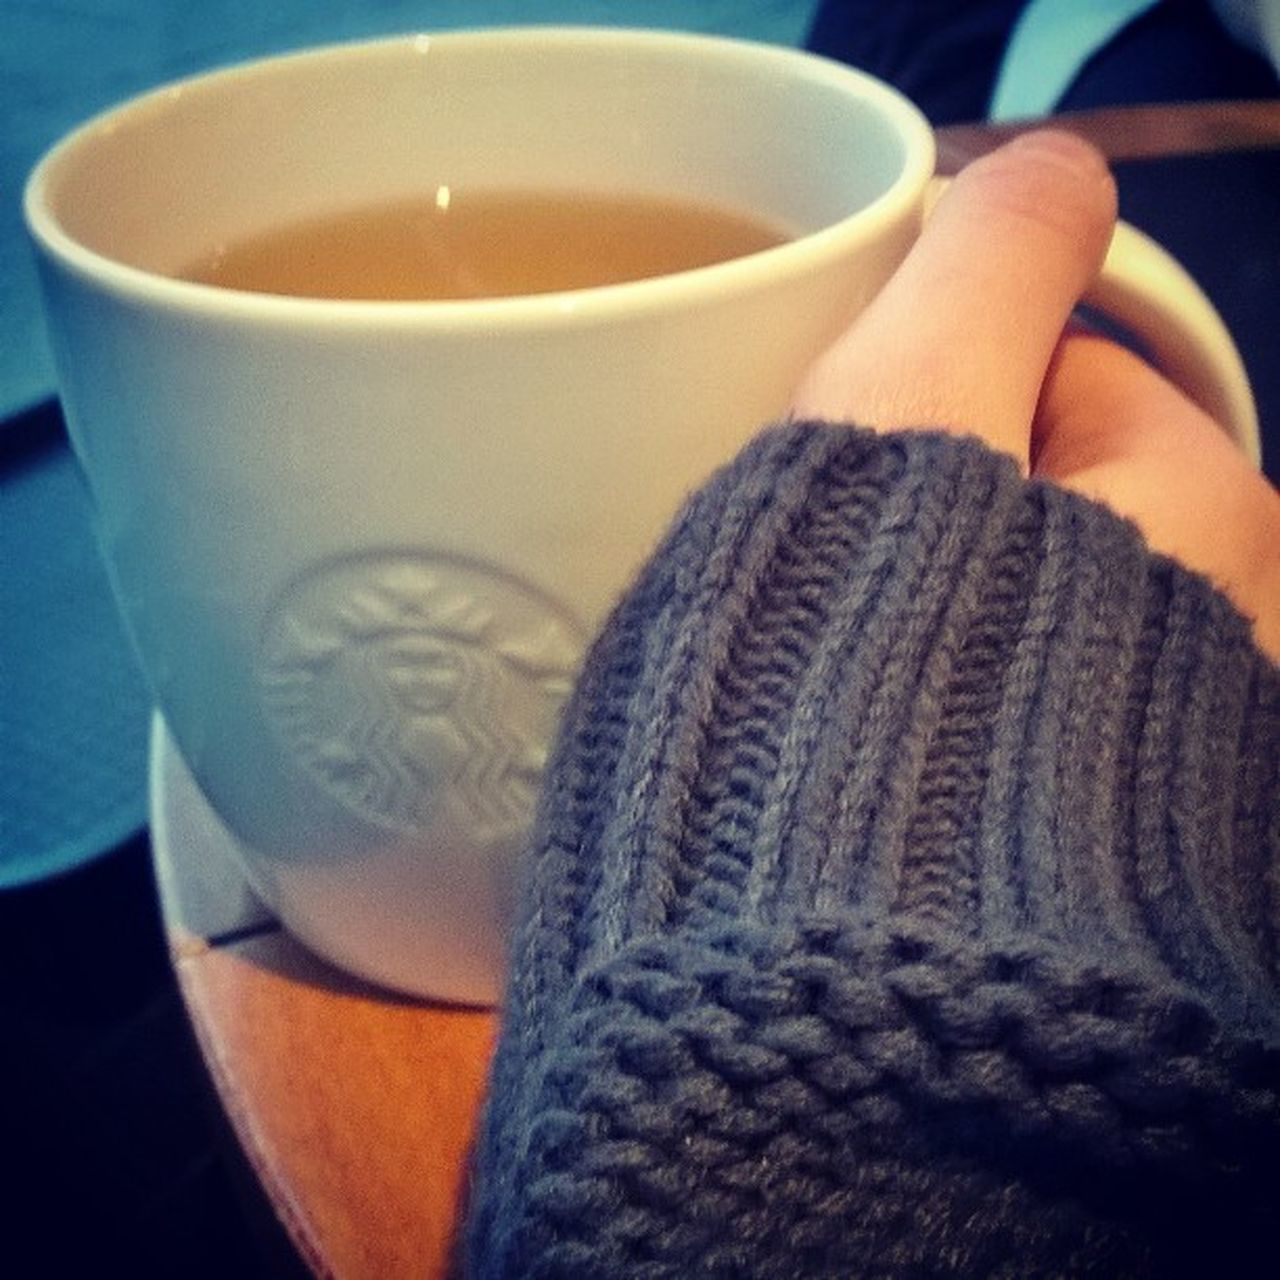 drink, coffee cup, refreshment, food and drink, indoors, coffee - drink, sweater, wool, tea - hot drink, close-up, one person, warm clothing, winter, day, freshness, people